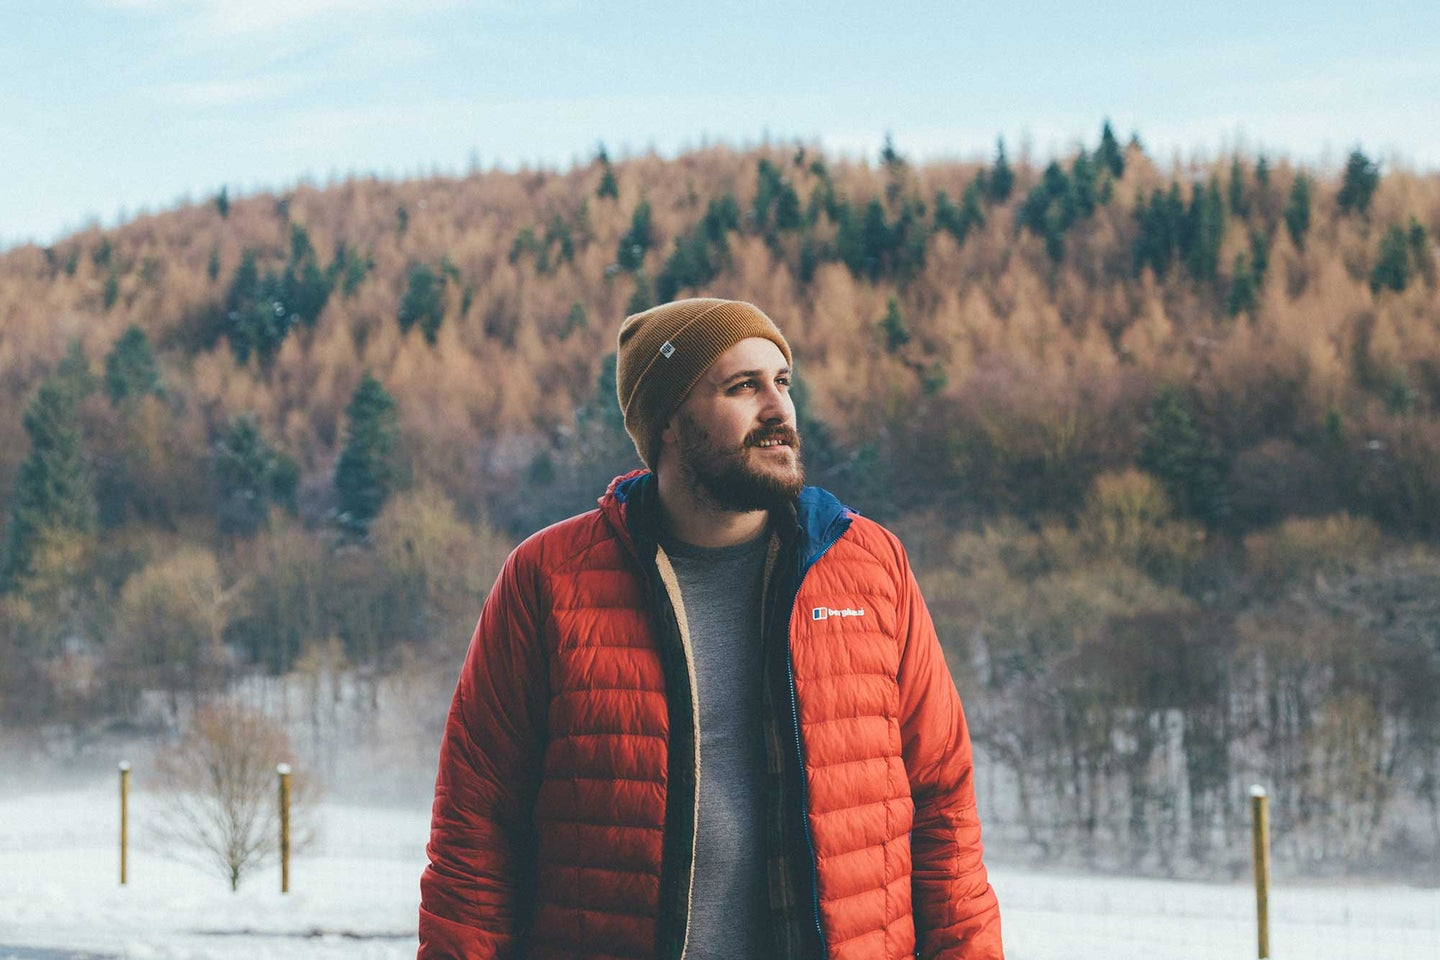 Man standing in the woods wearing some of the best winter clothing.